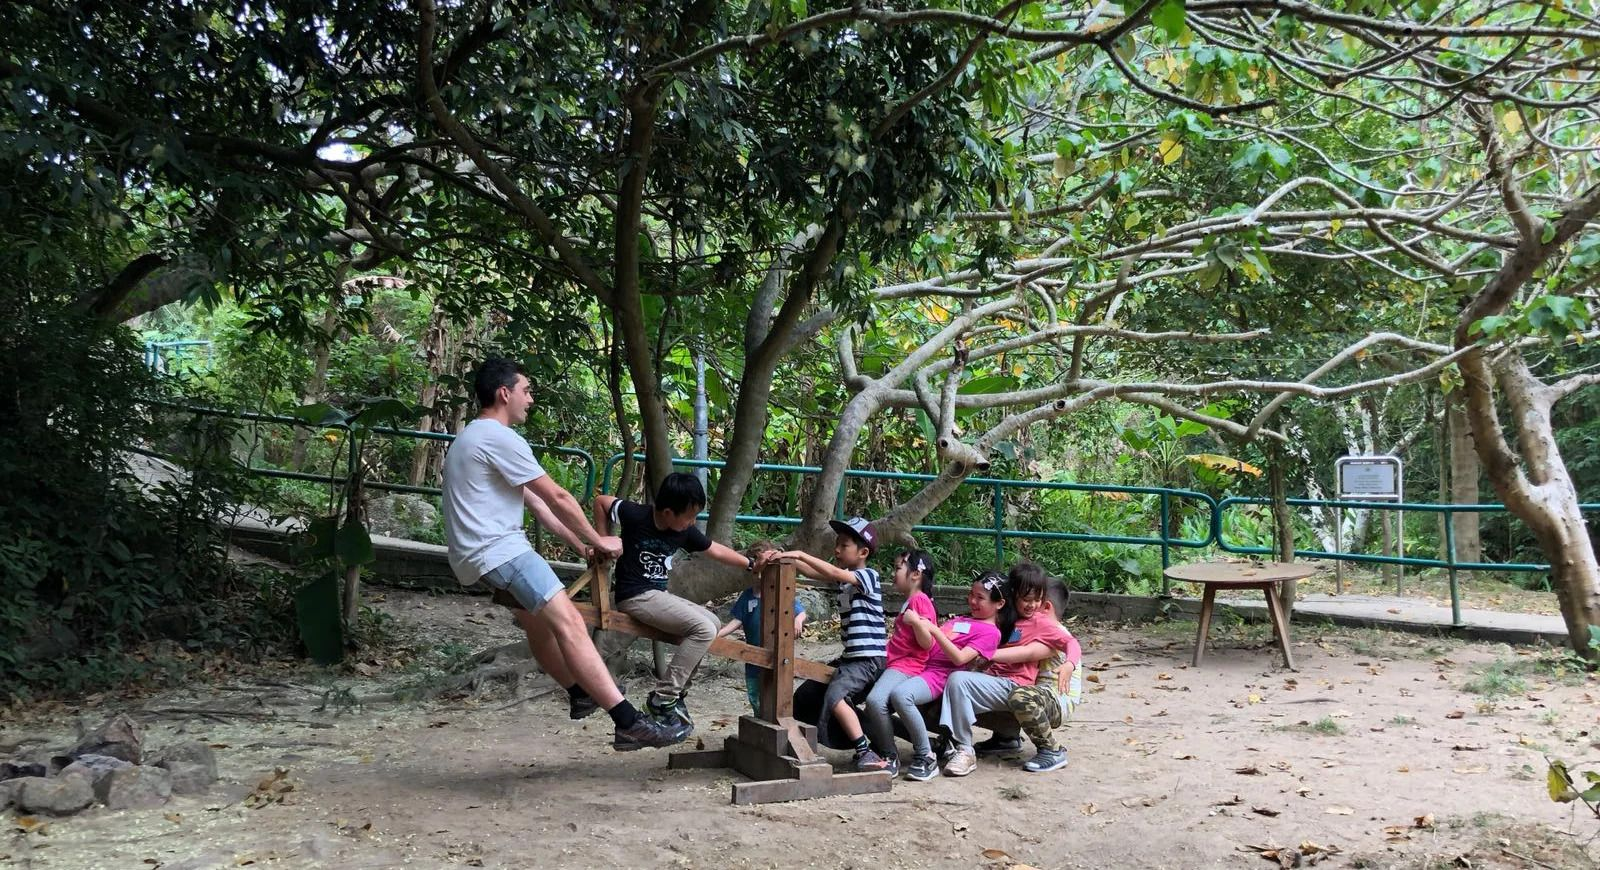 The Great Outdoors: 3 Forest School Activities For Kids In Hong Kong